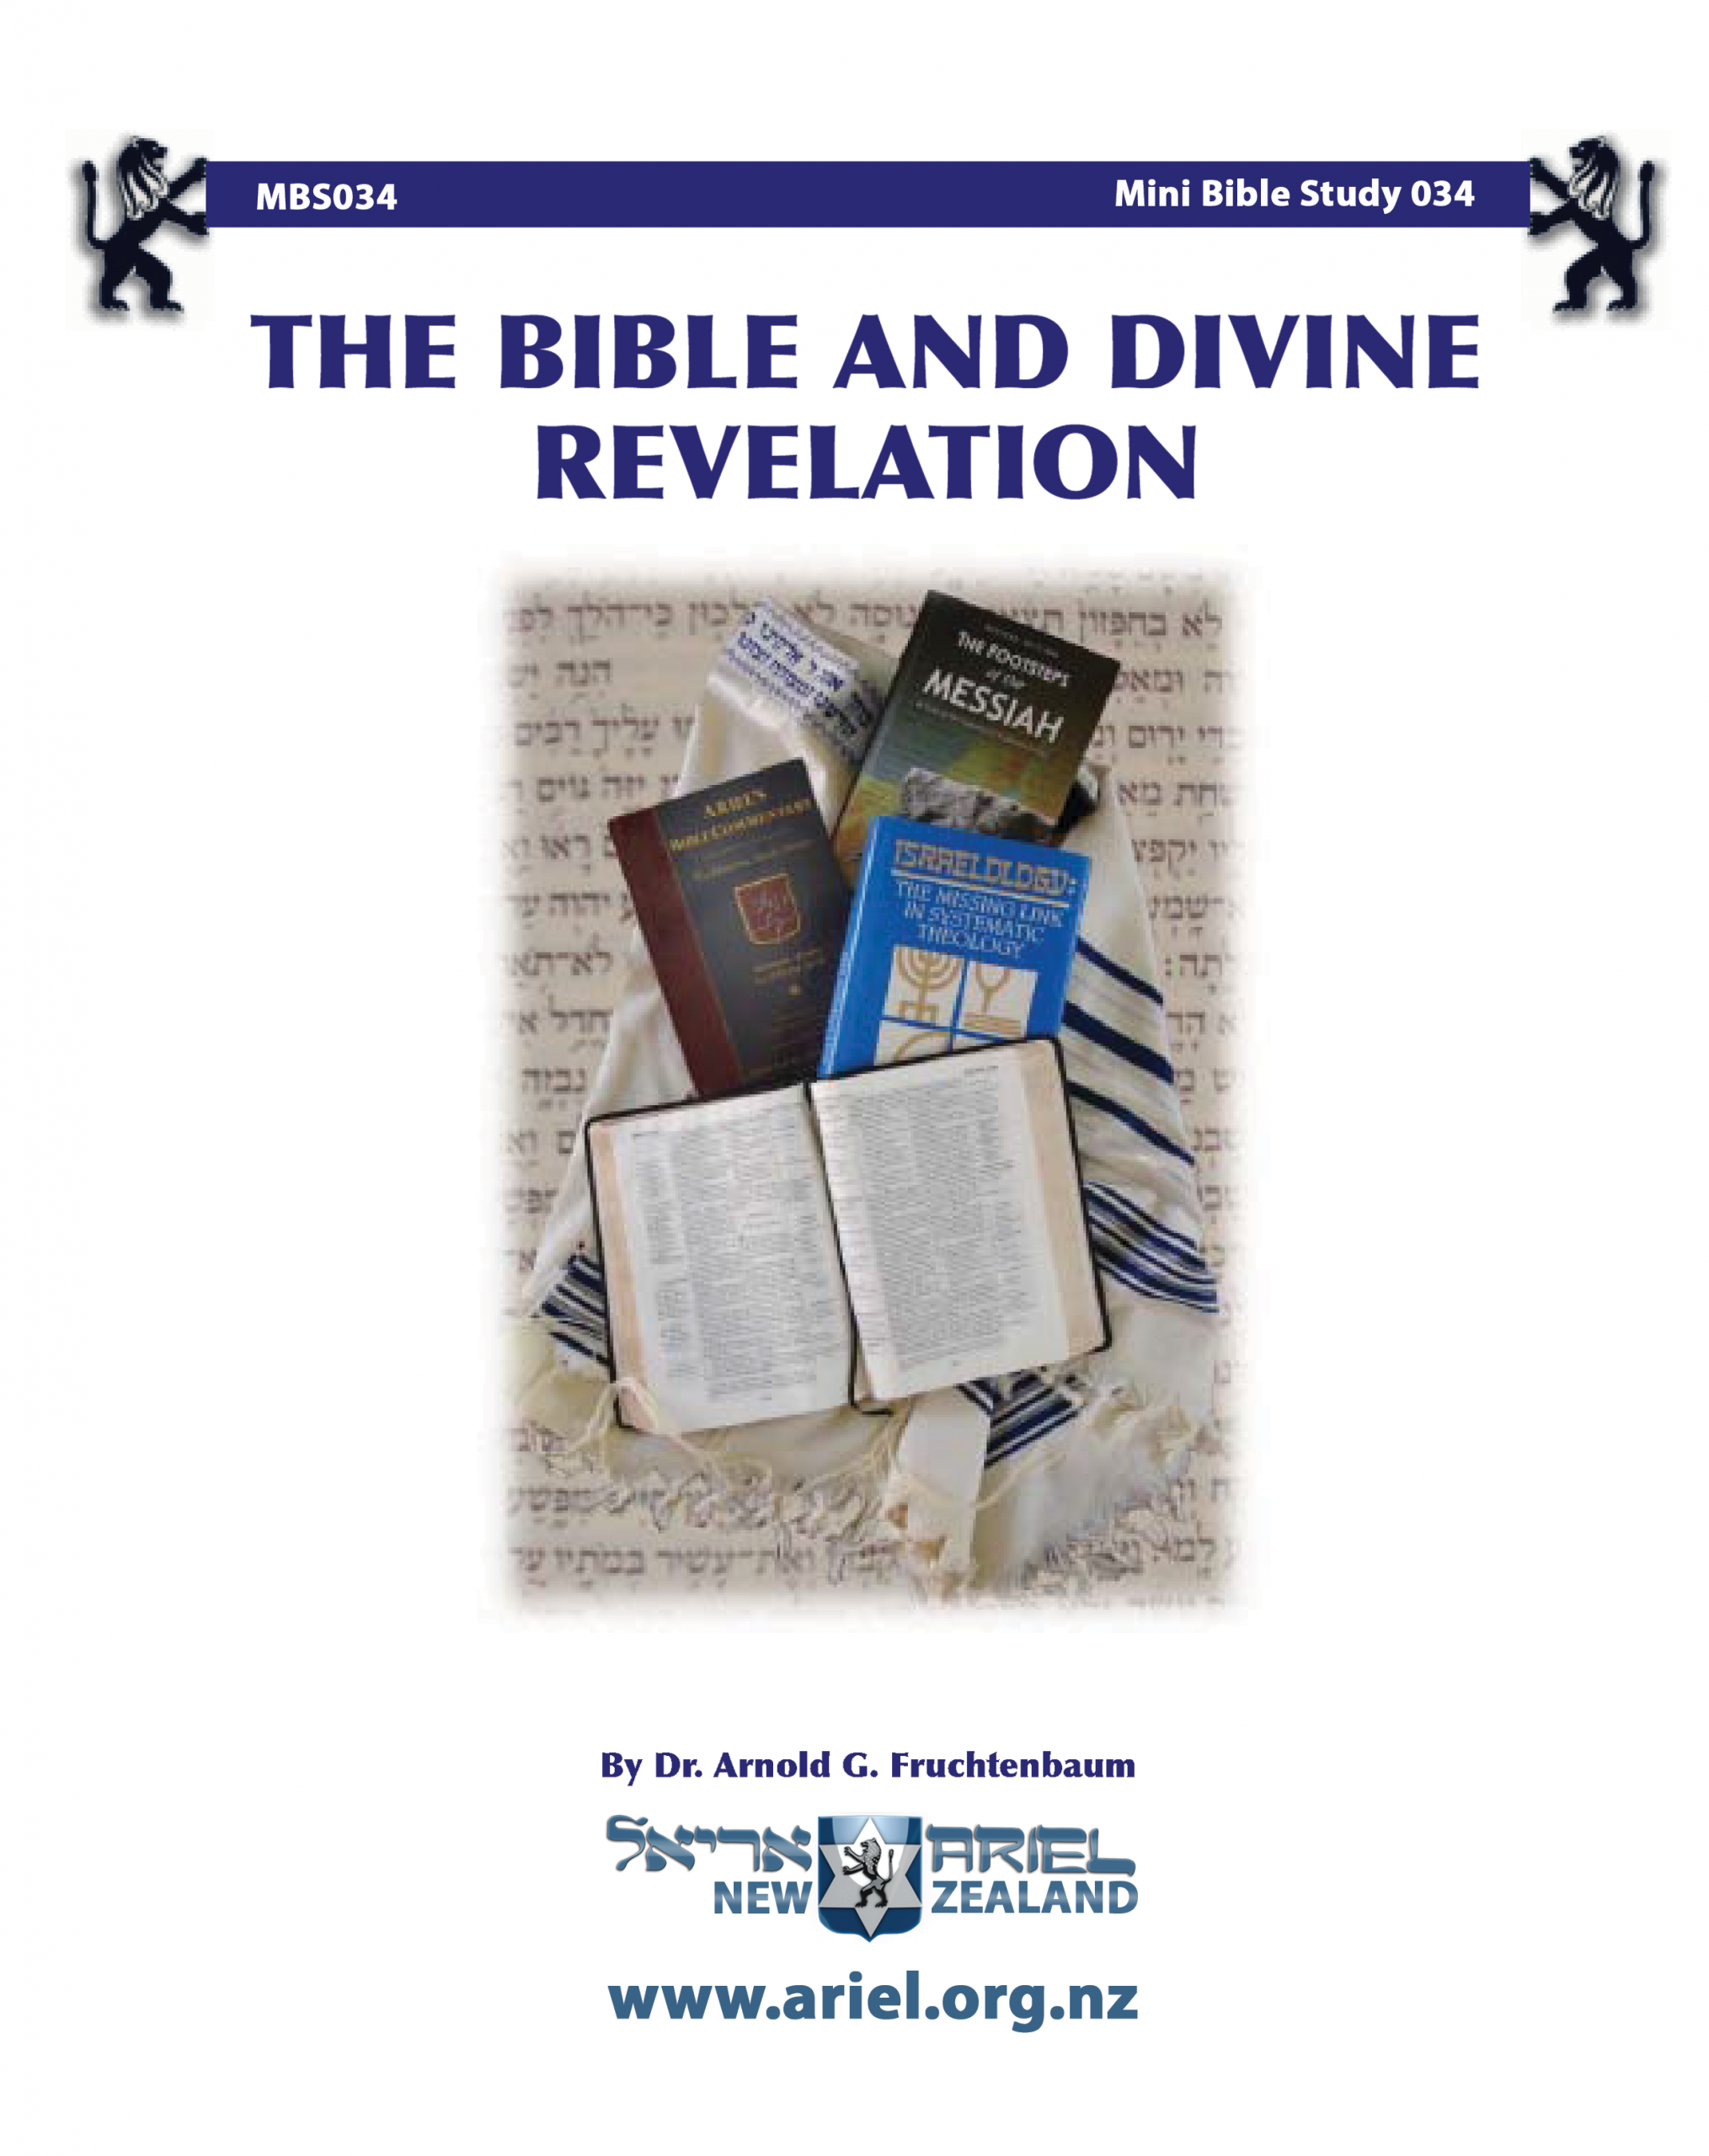 The Bible and Devine Revelation